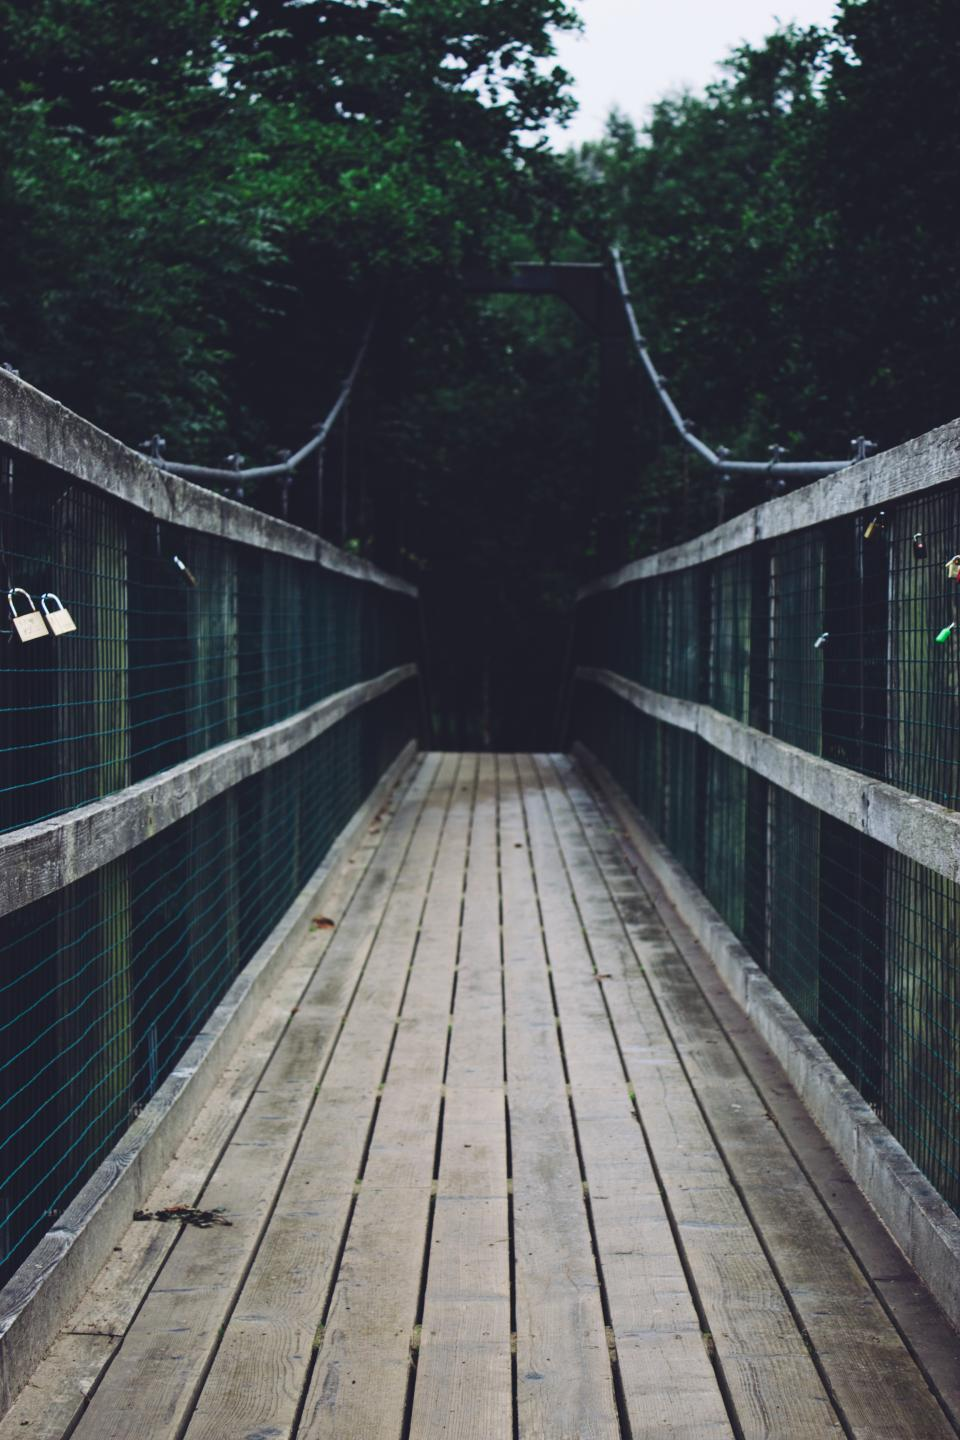 pathway, bridge, wood, wire, lock, travel, outdoor, trees, plant, nature, forest